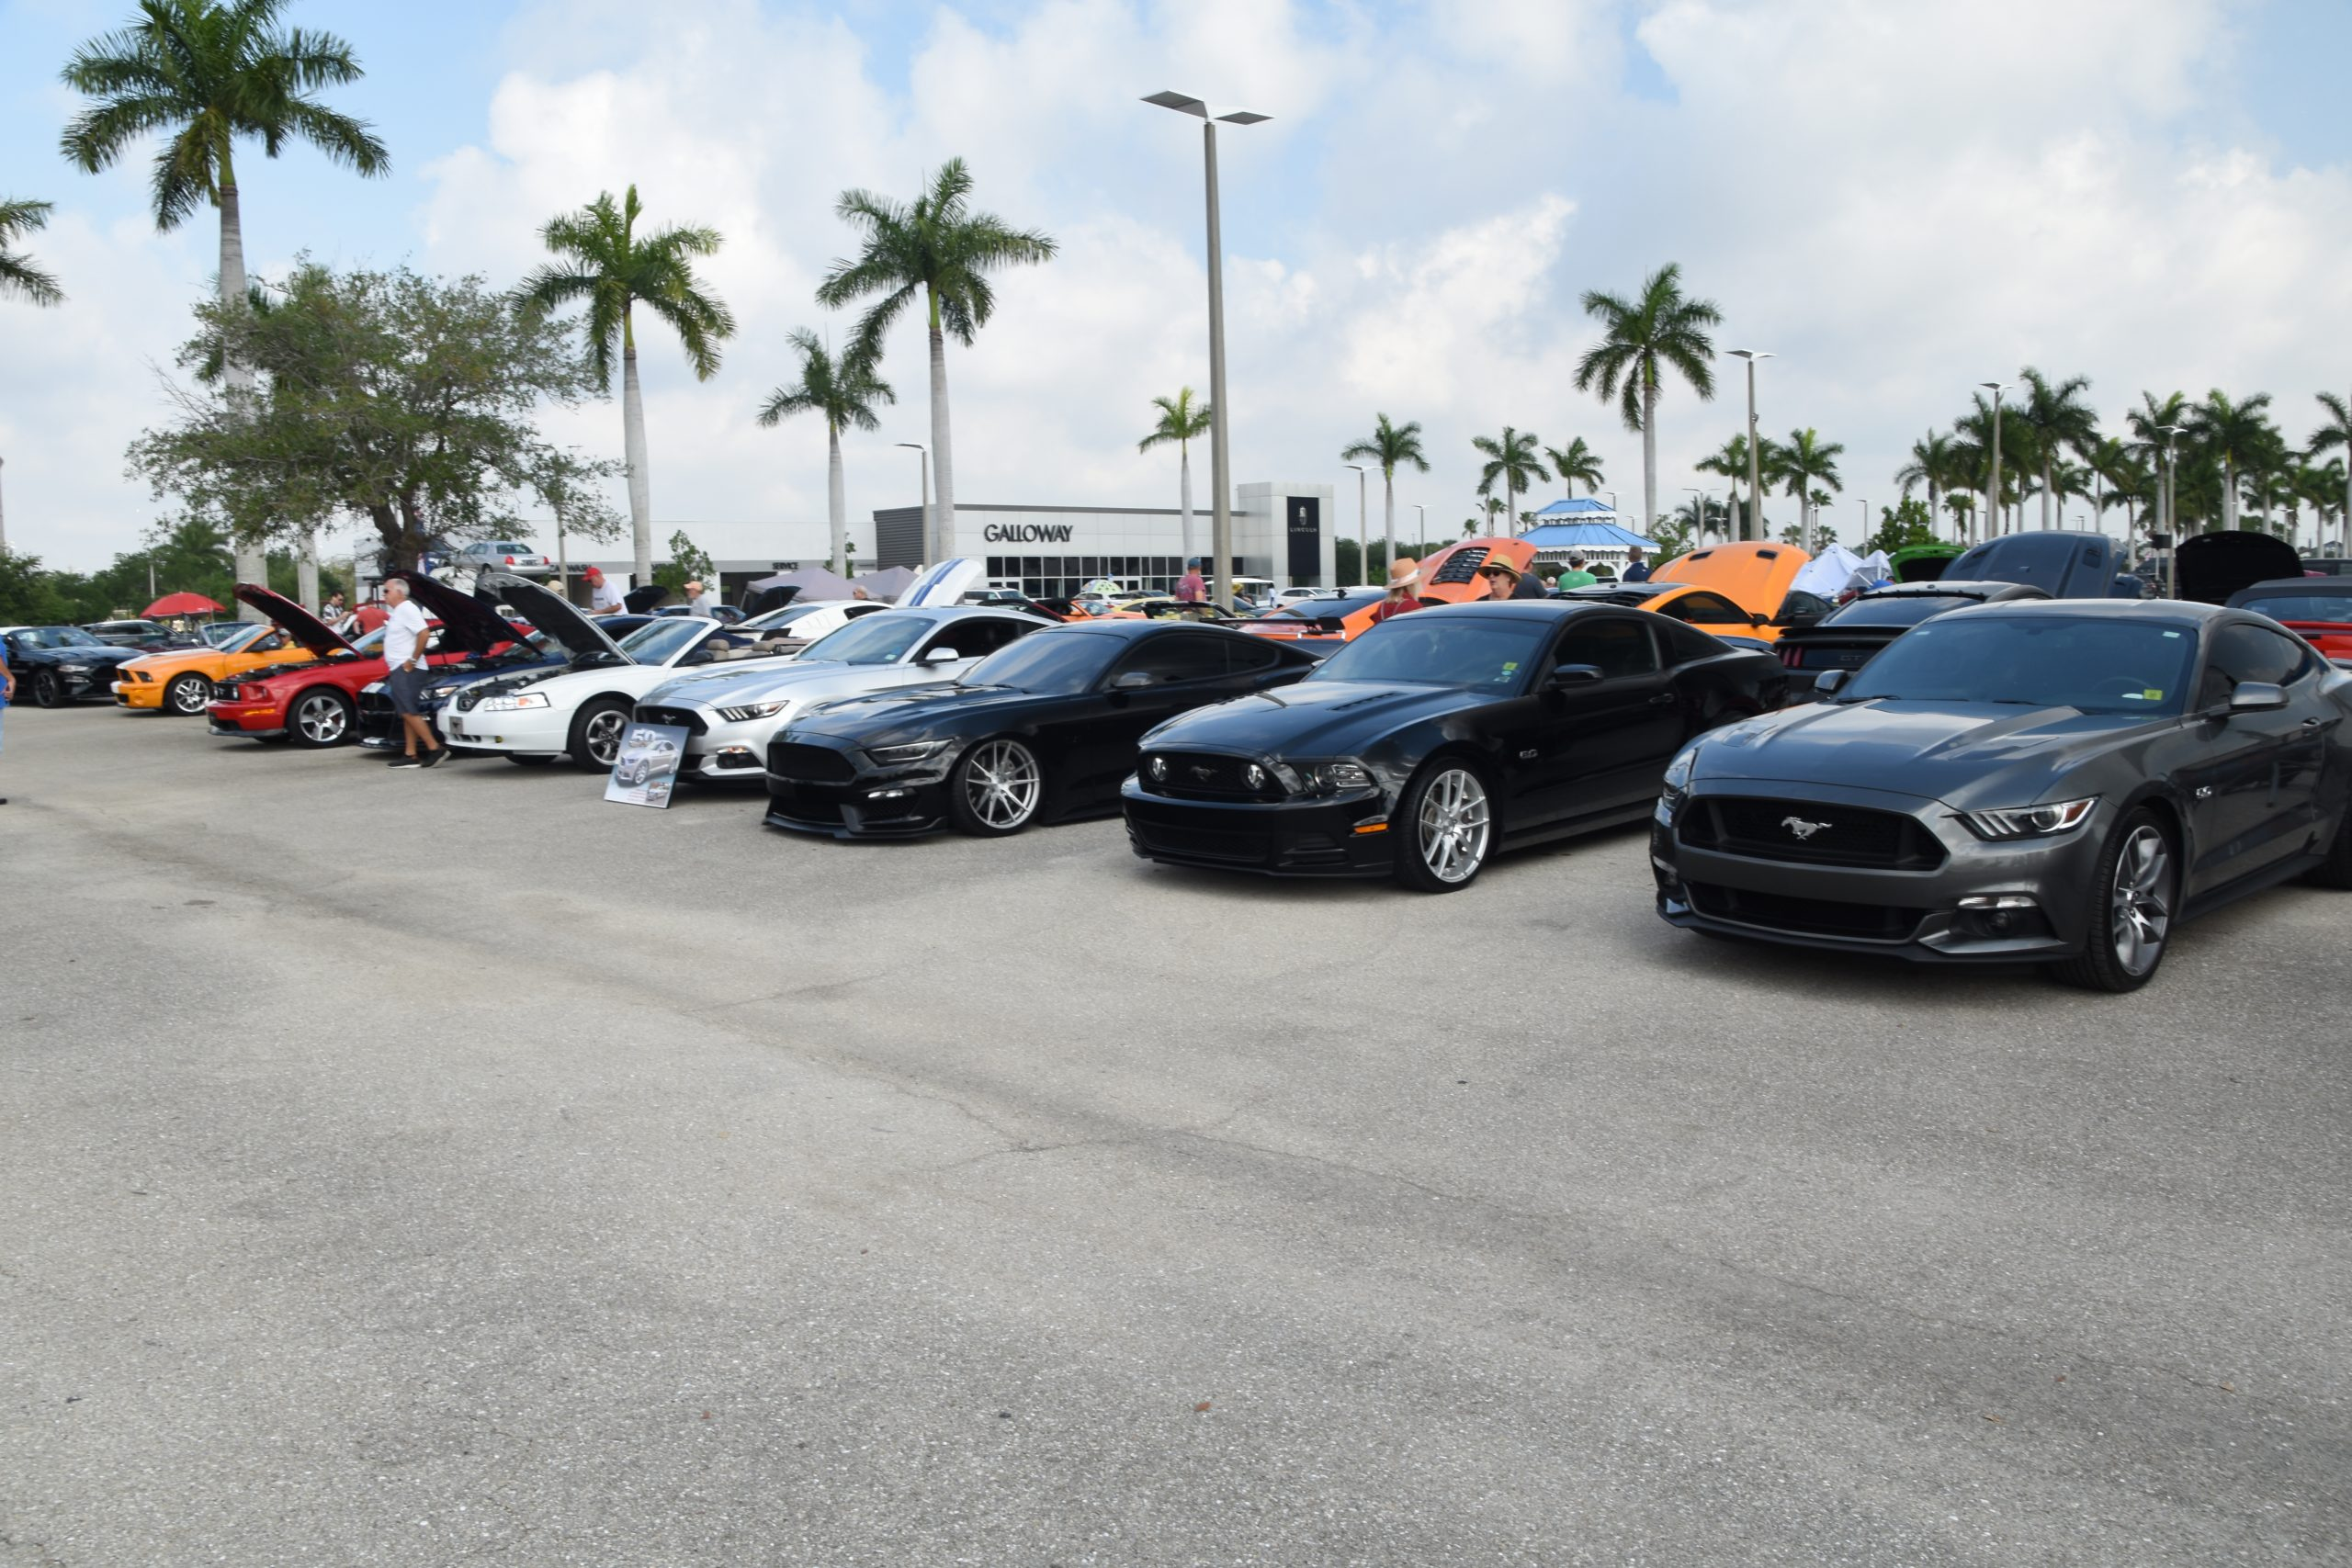 Row of Mustangs with hoods down